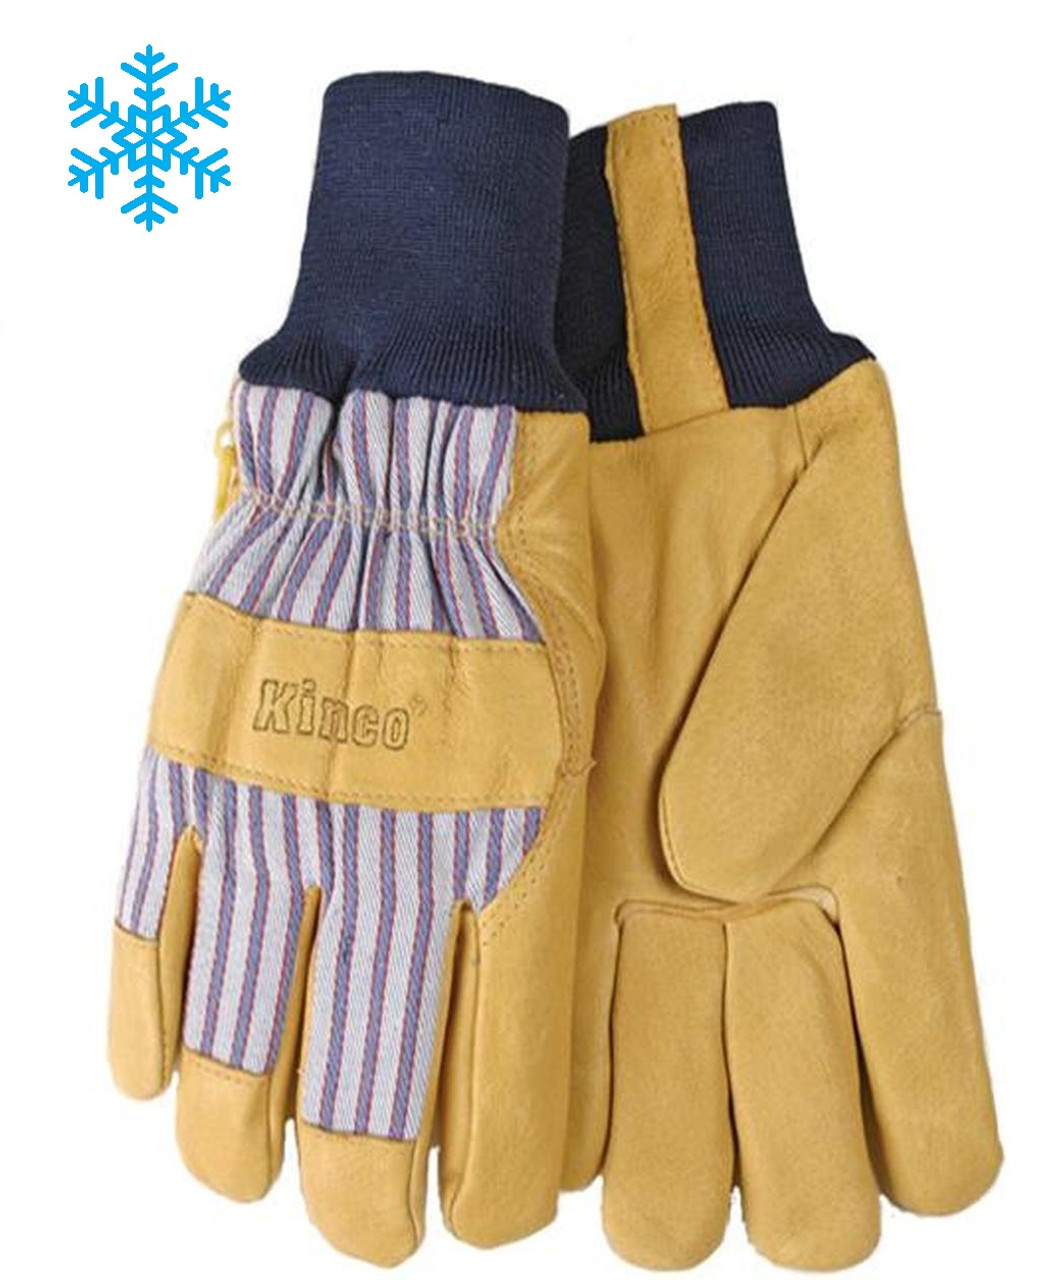 Kinco® Top Grain Pigskin Palm Knit Wrist Gloves - Insulated Gloves  ## 1927KW ##